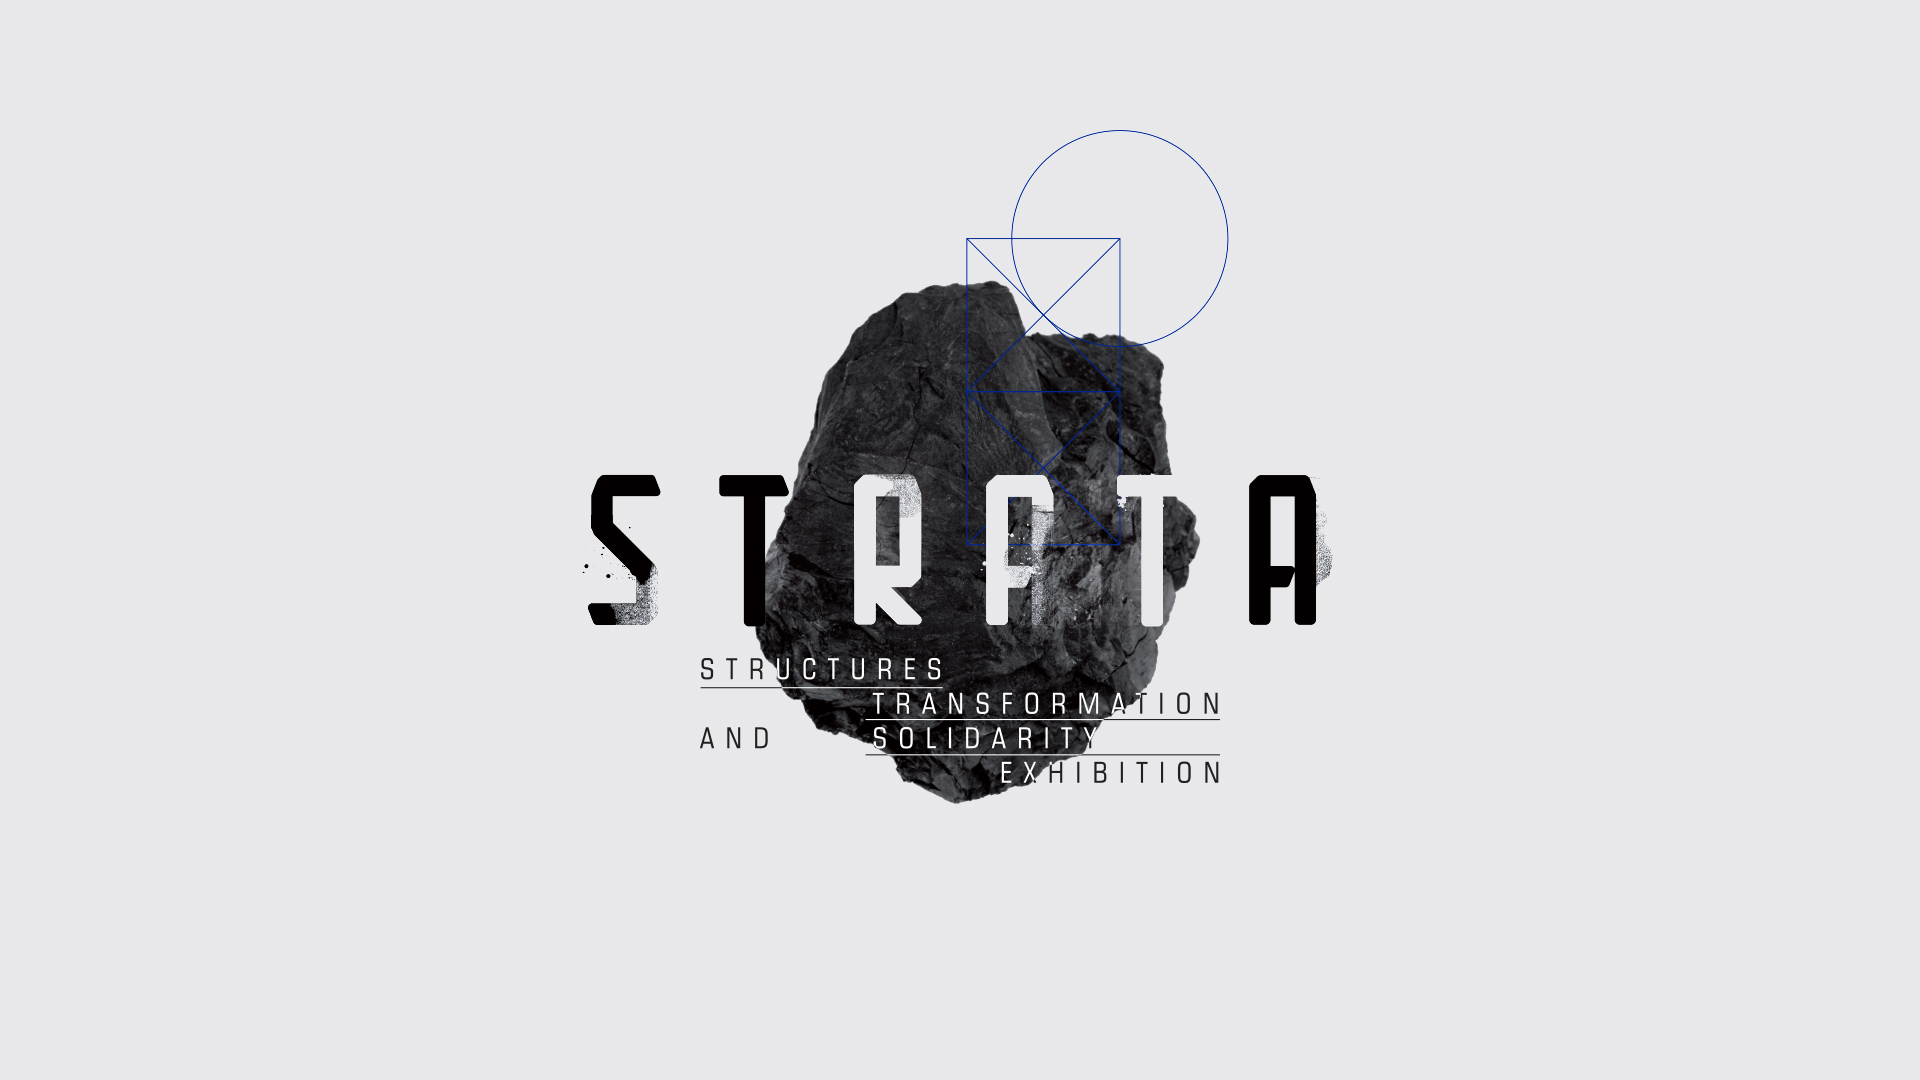 Experience Barnsley - Strata Exhibition and Branding